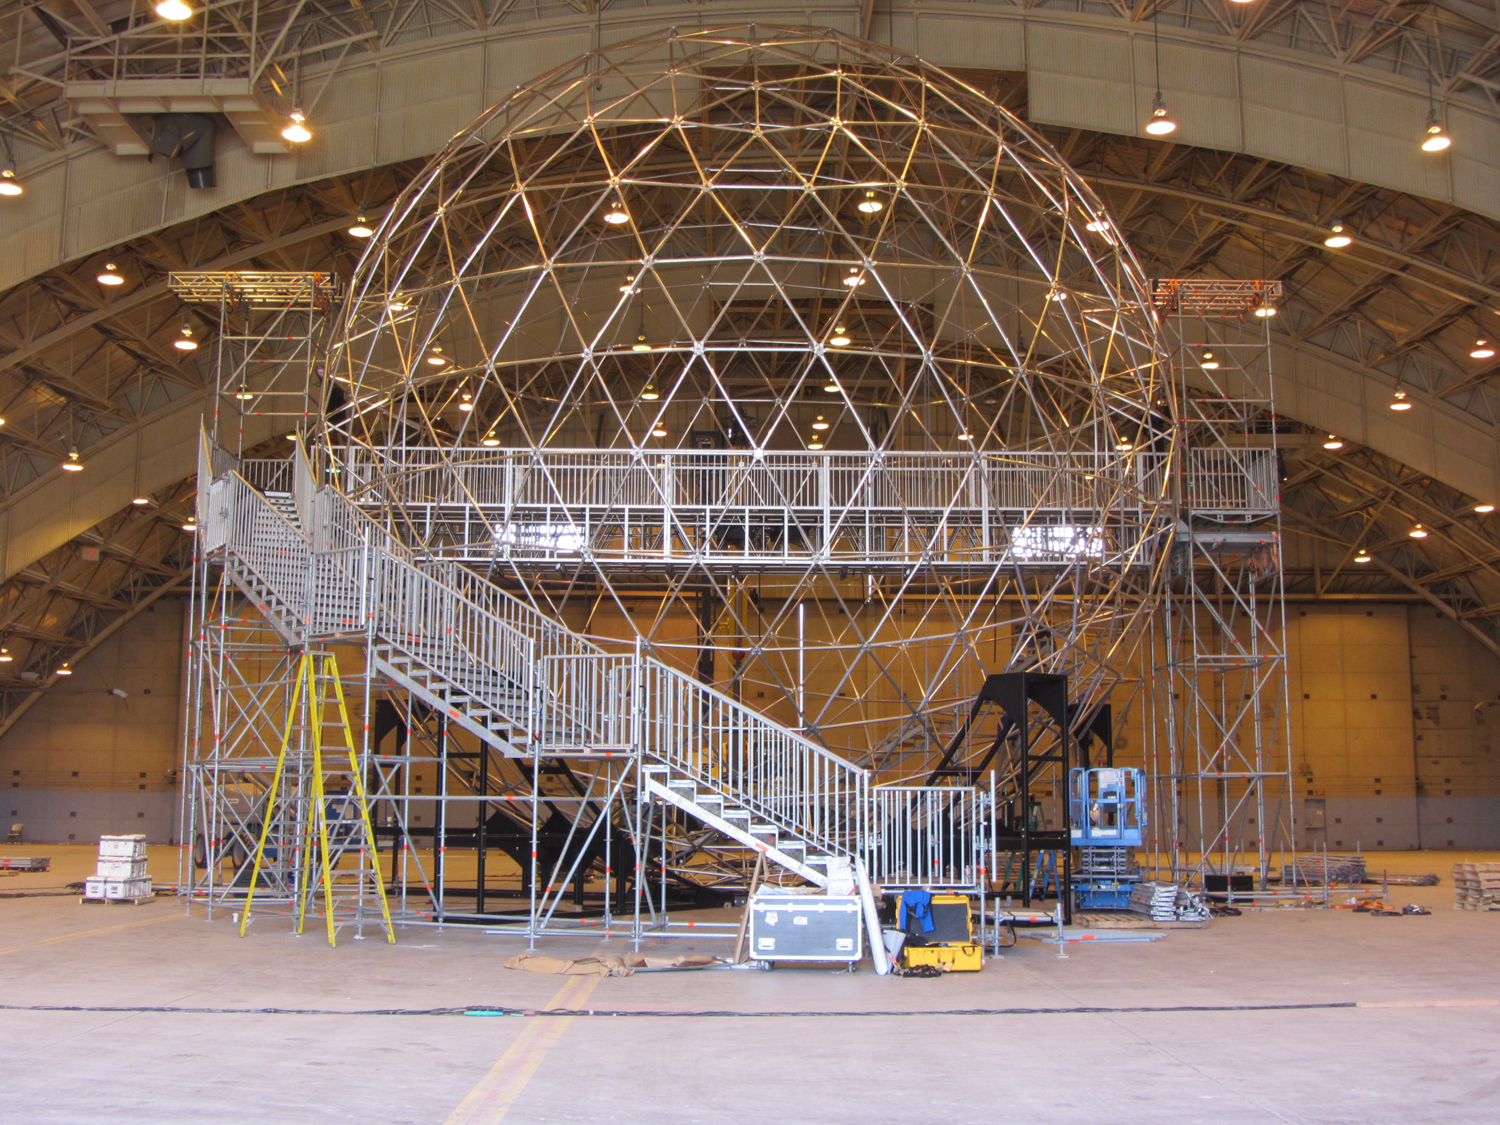 Test build in CA - Geodesic with bridge & stair structure.